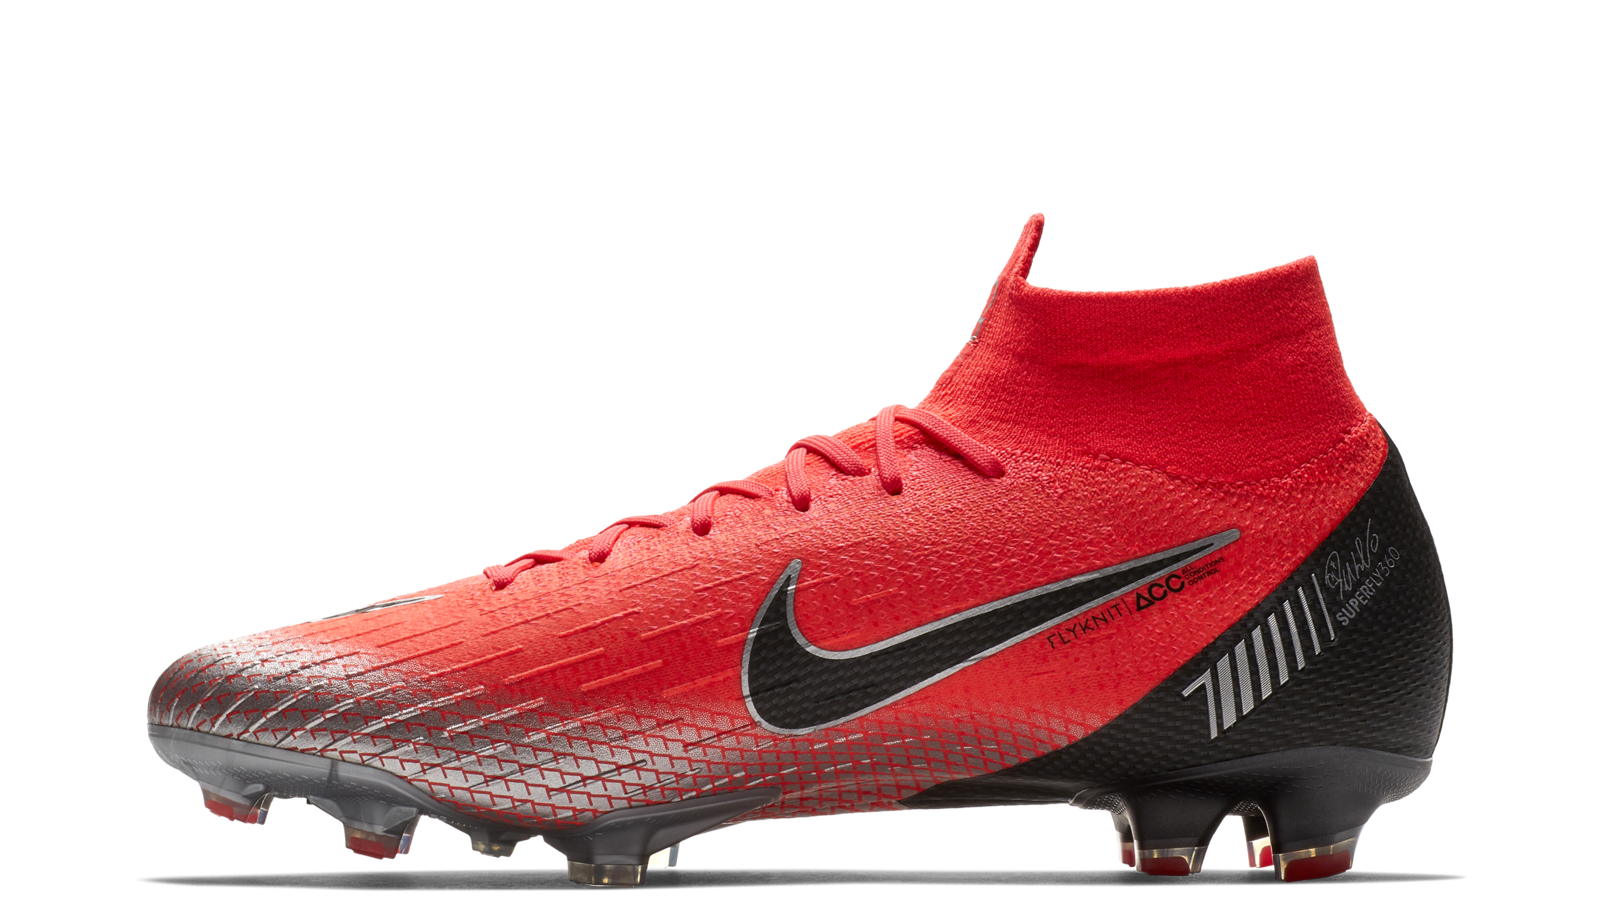 3c23daba354bac CR7 Chapter 7 Mercurial - Nike News